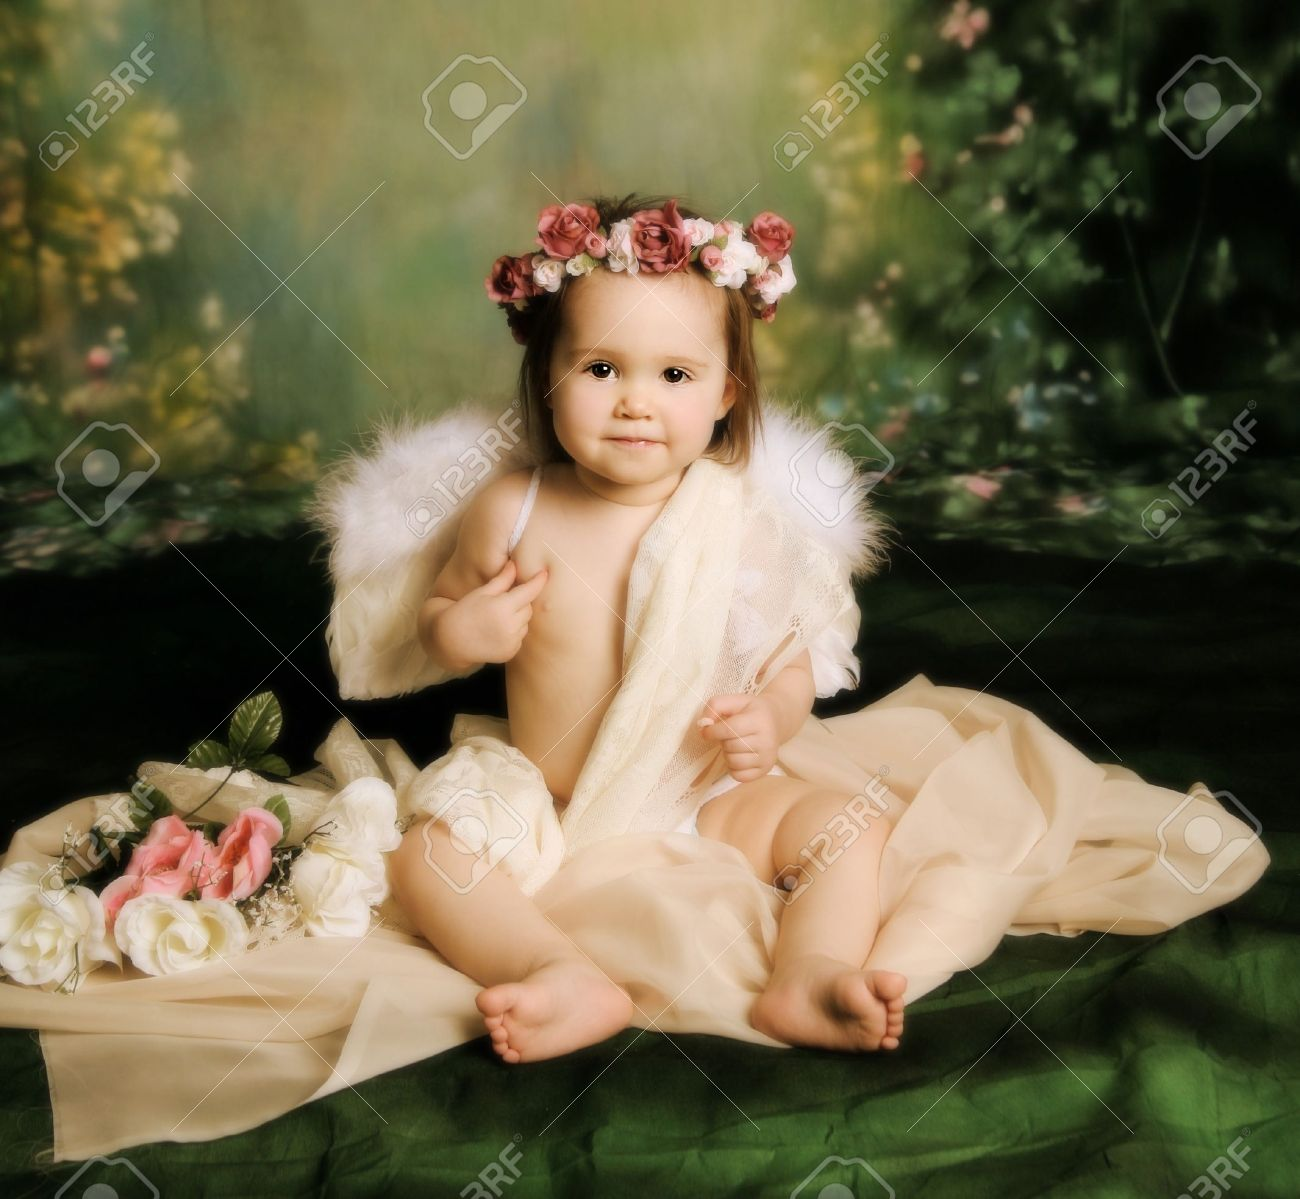 Elegant vintage style portrait of a baby girl dressed with angel wings and  a flower halo 1246358208a